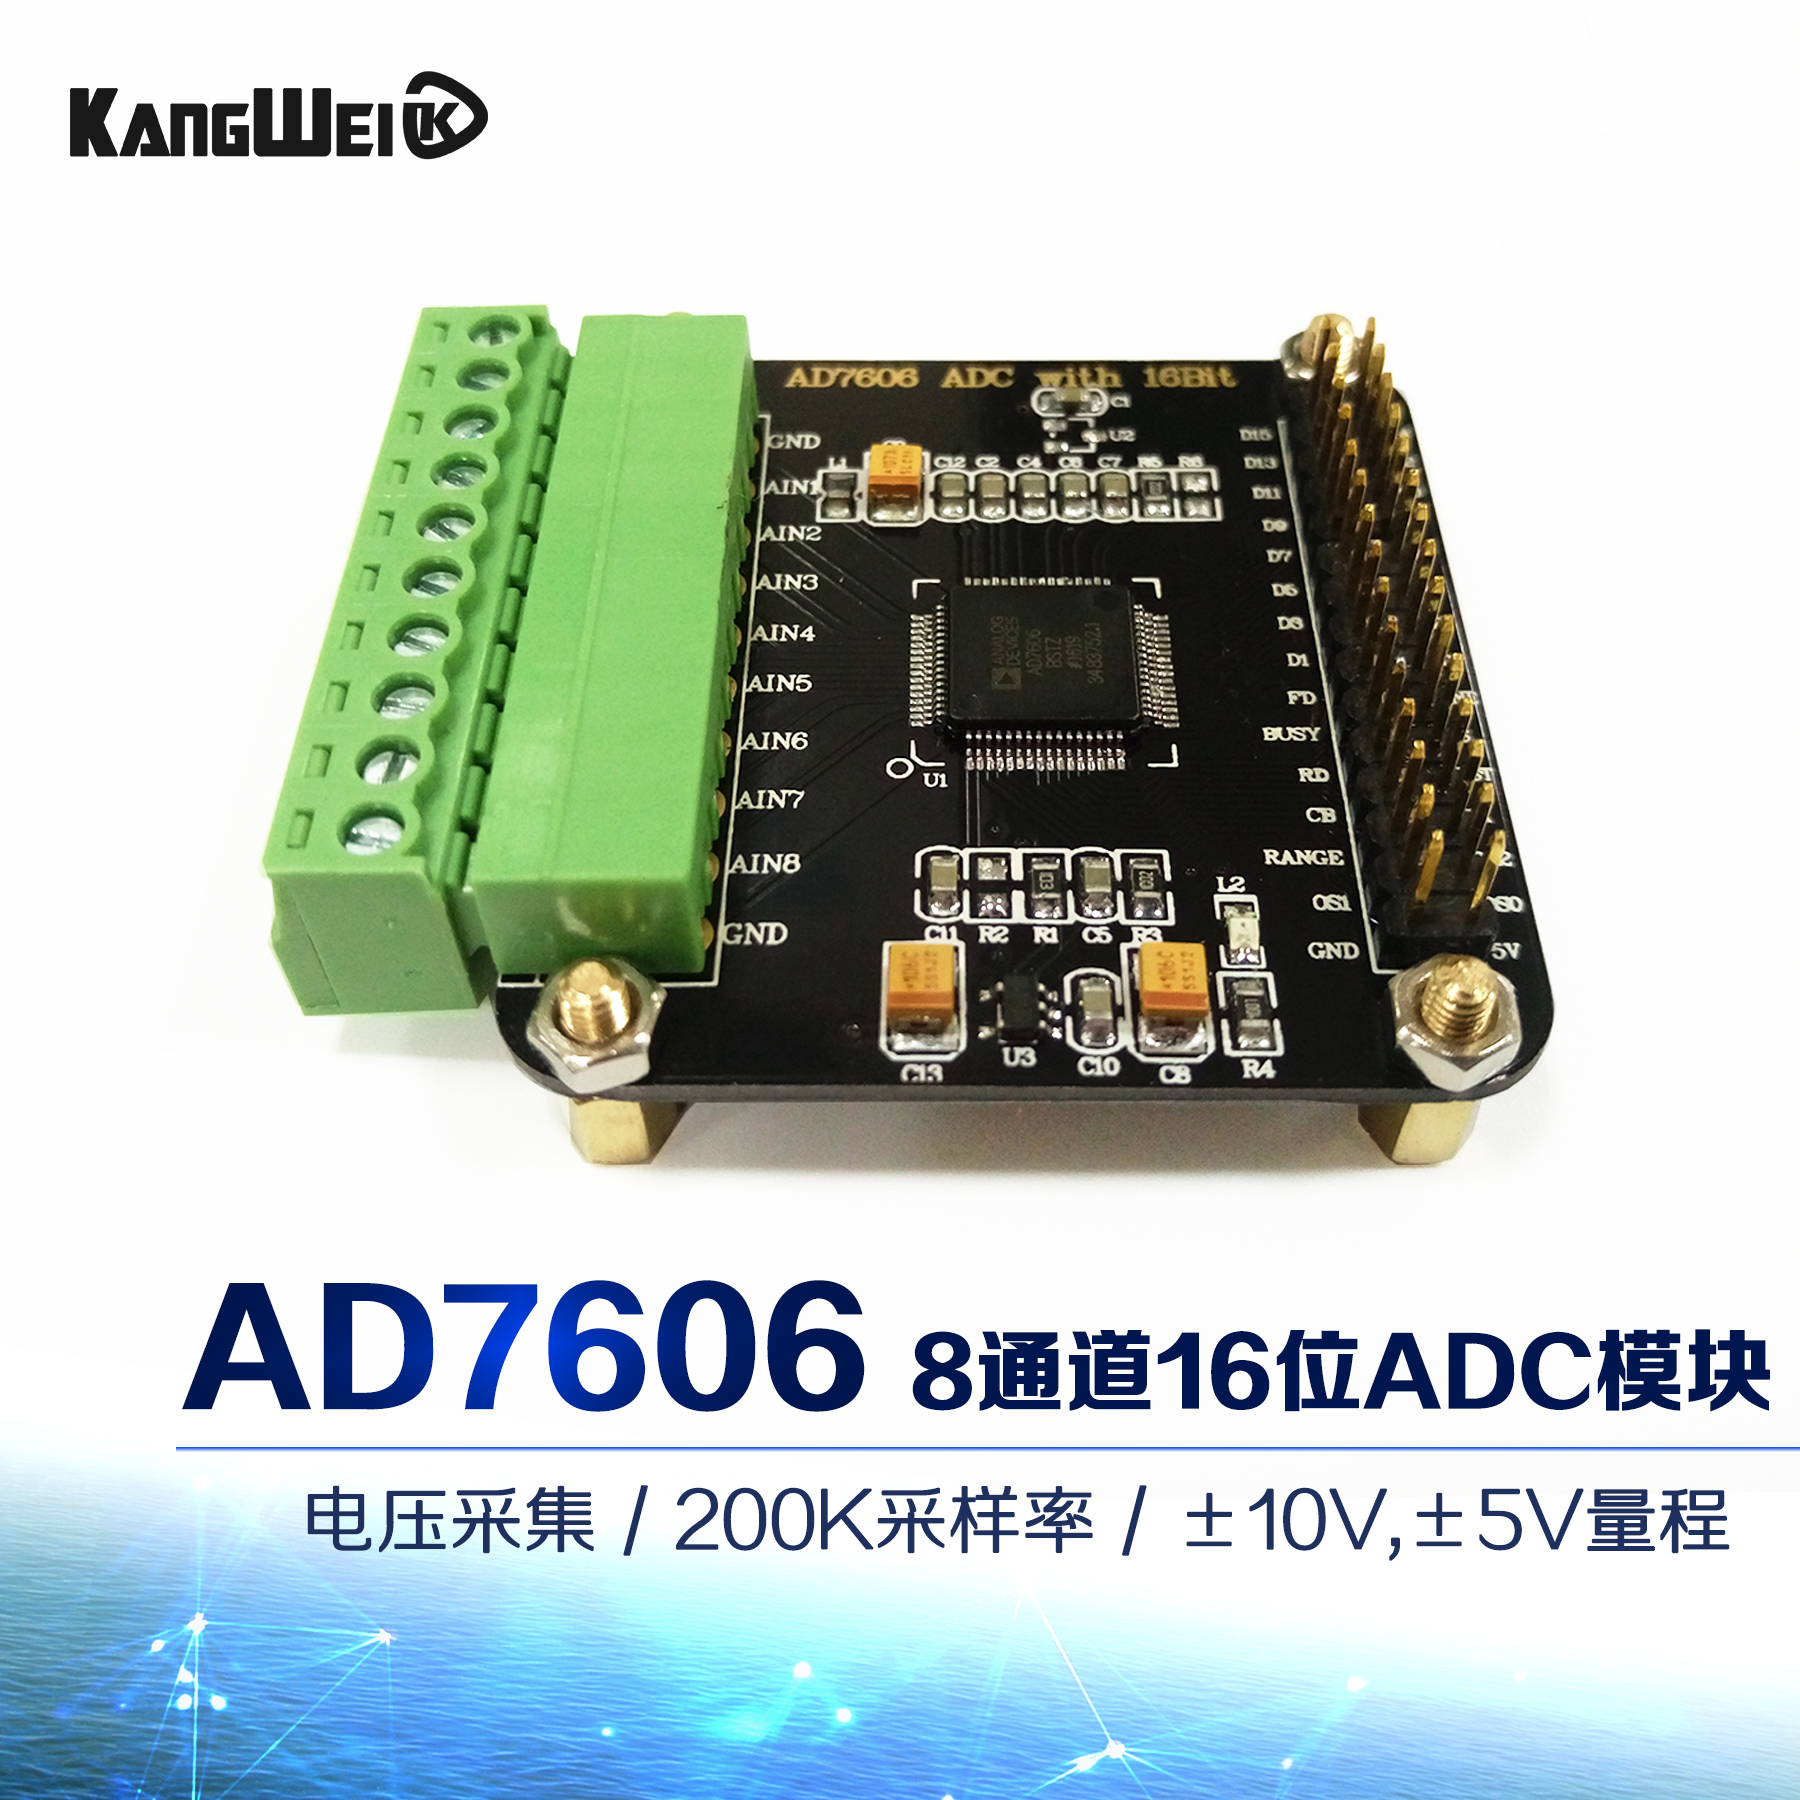 AD7606 multi-channel AD data acquisition module 16 bit ADC 8 synchronous sampling frequency 200KHz